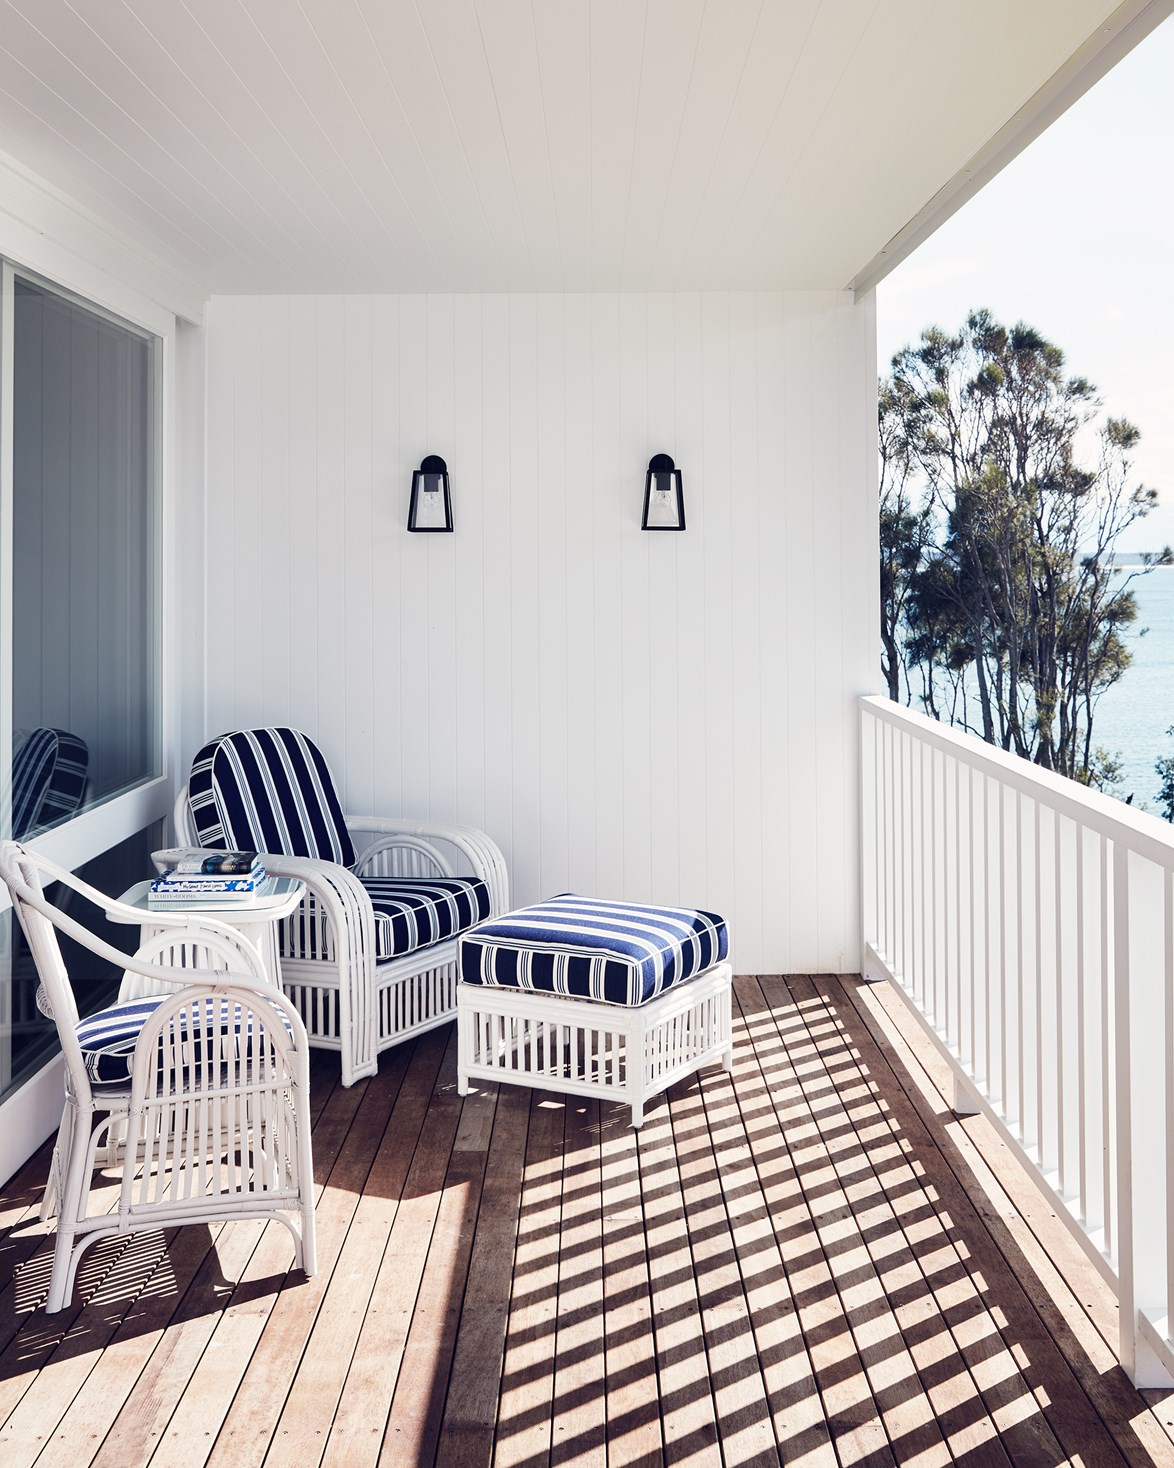 "The penthouse suites at [Bannisters in Mollymook Beach](https://www.homestolove.com.au/collette-dinnigan-designs-a-boutique-hotel-2163|target=""_blank"") were designed by Collette Dinnigan, fashion designer and former local."